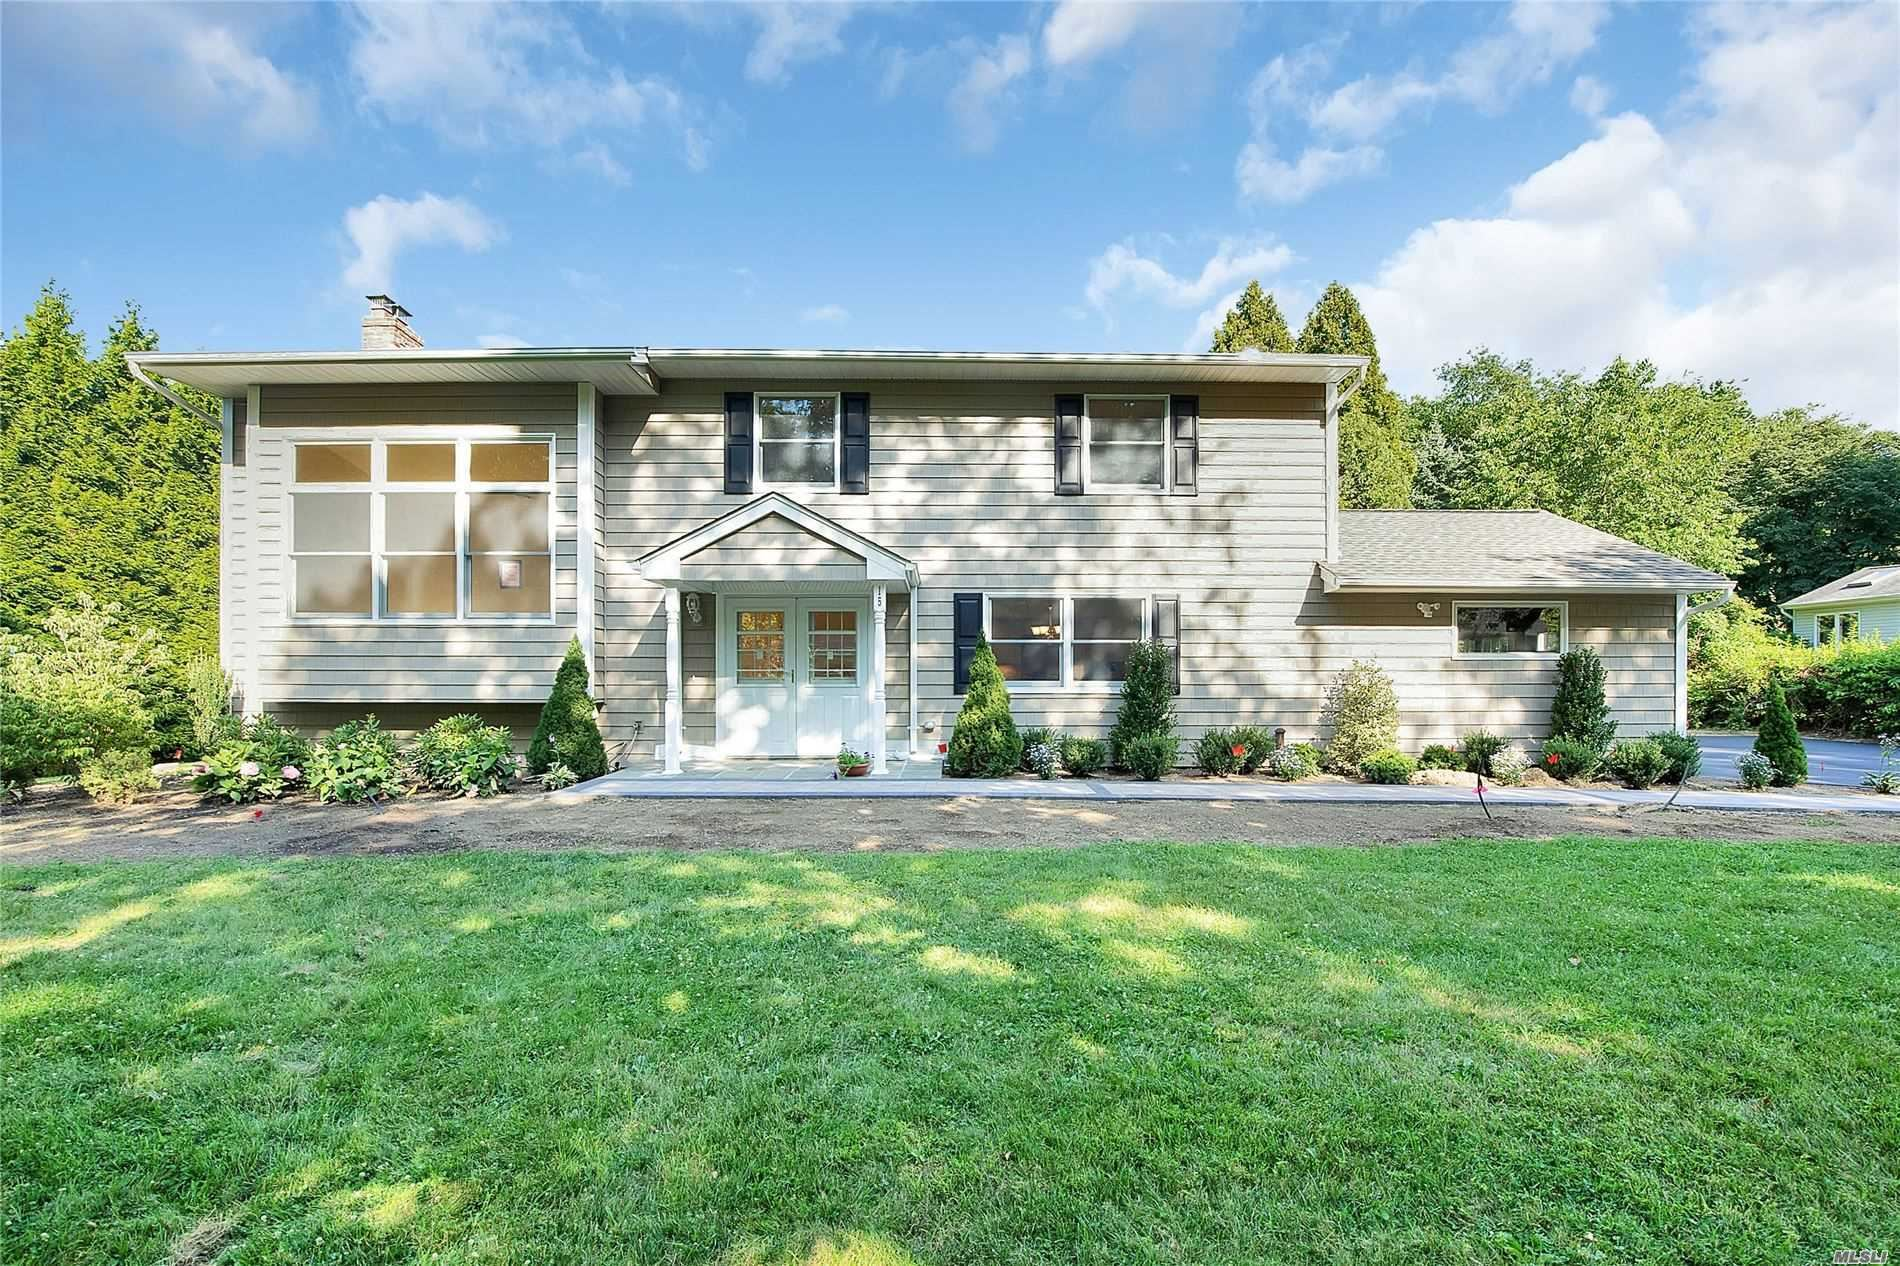 15 Polly Drive, Huntington, NY 11743 - MLS#: 3227901